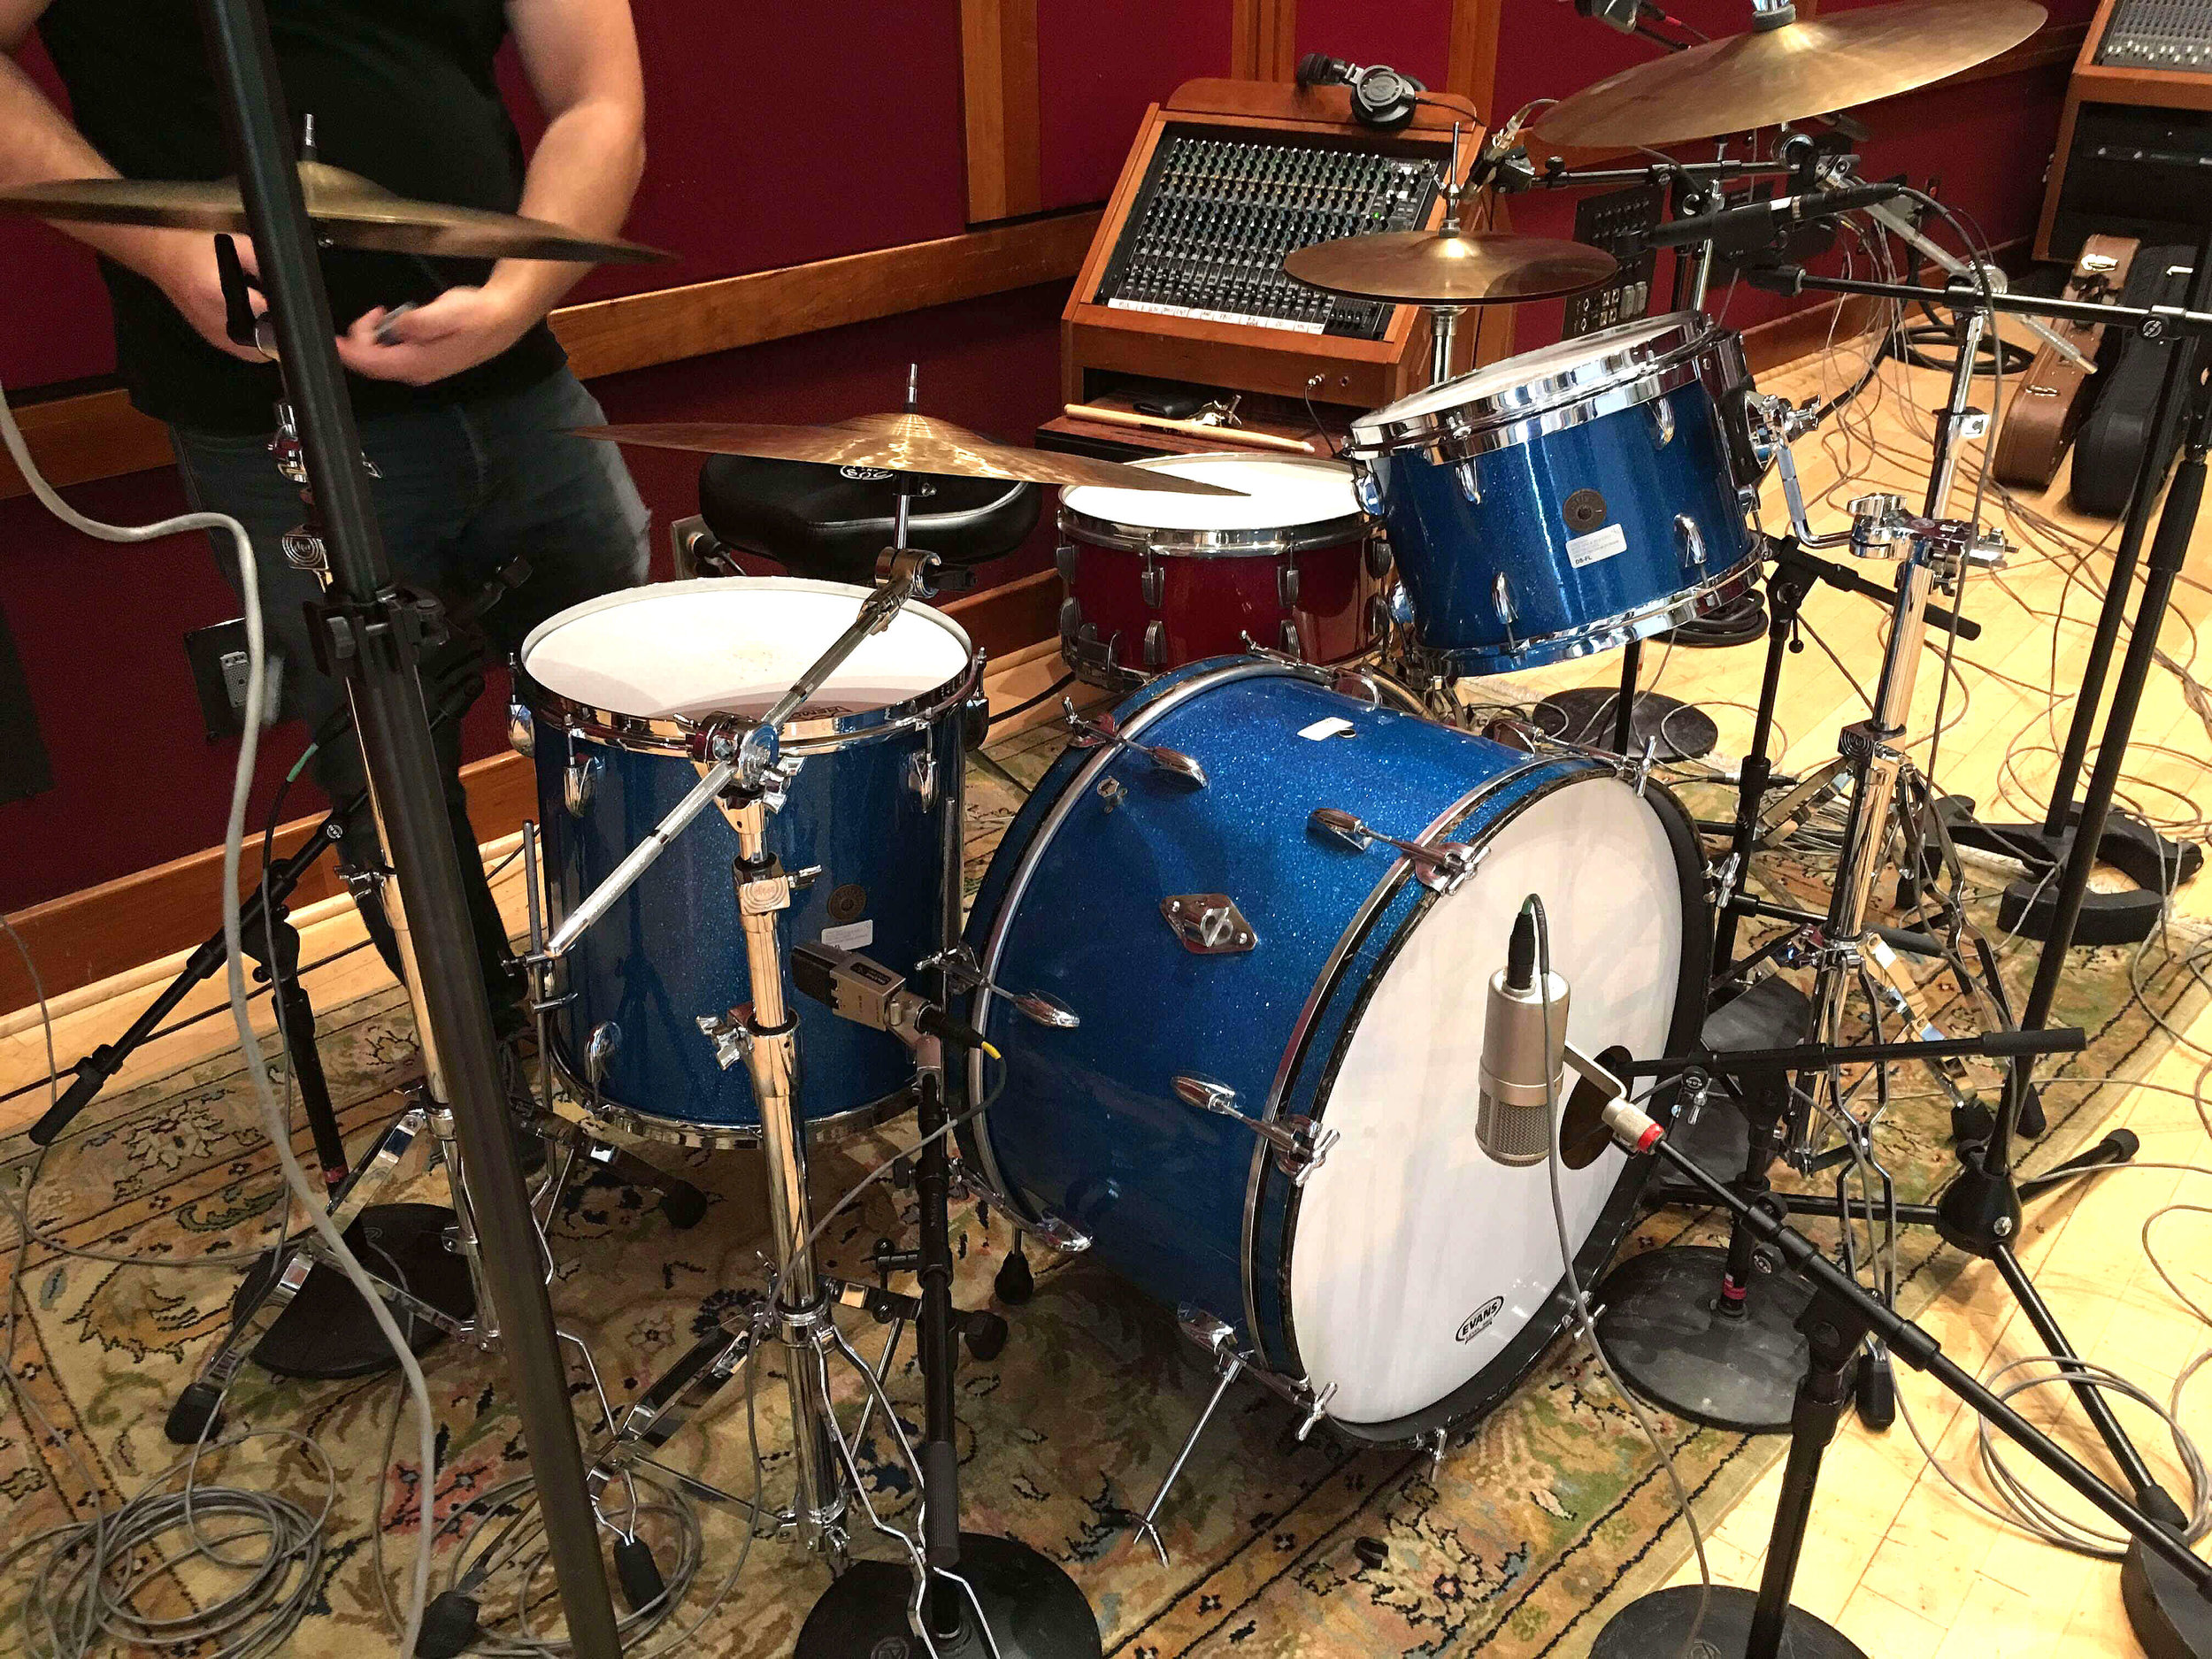 The cymbal on the far right of the drummer is sometimes a challenge for stereo overheads and calls for a spot mic, but in this case the widely spaced Coles did the job well